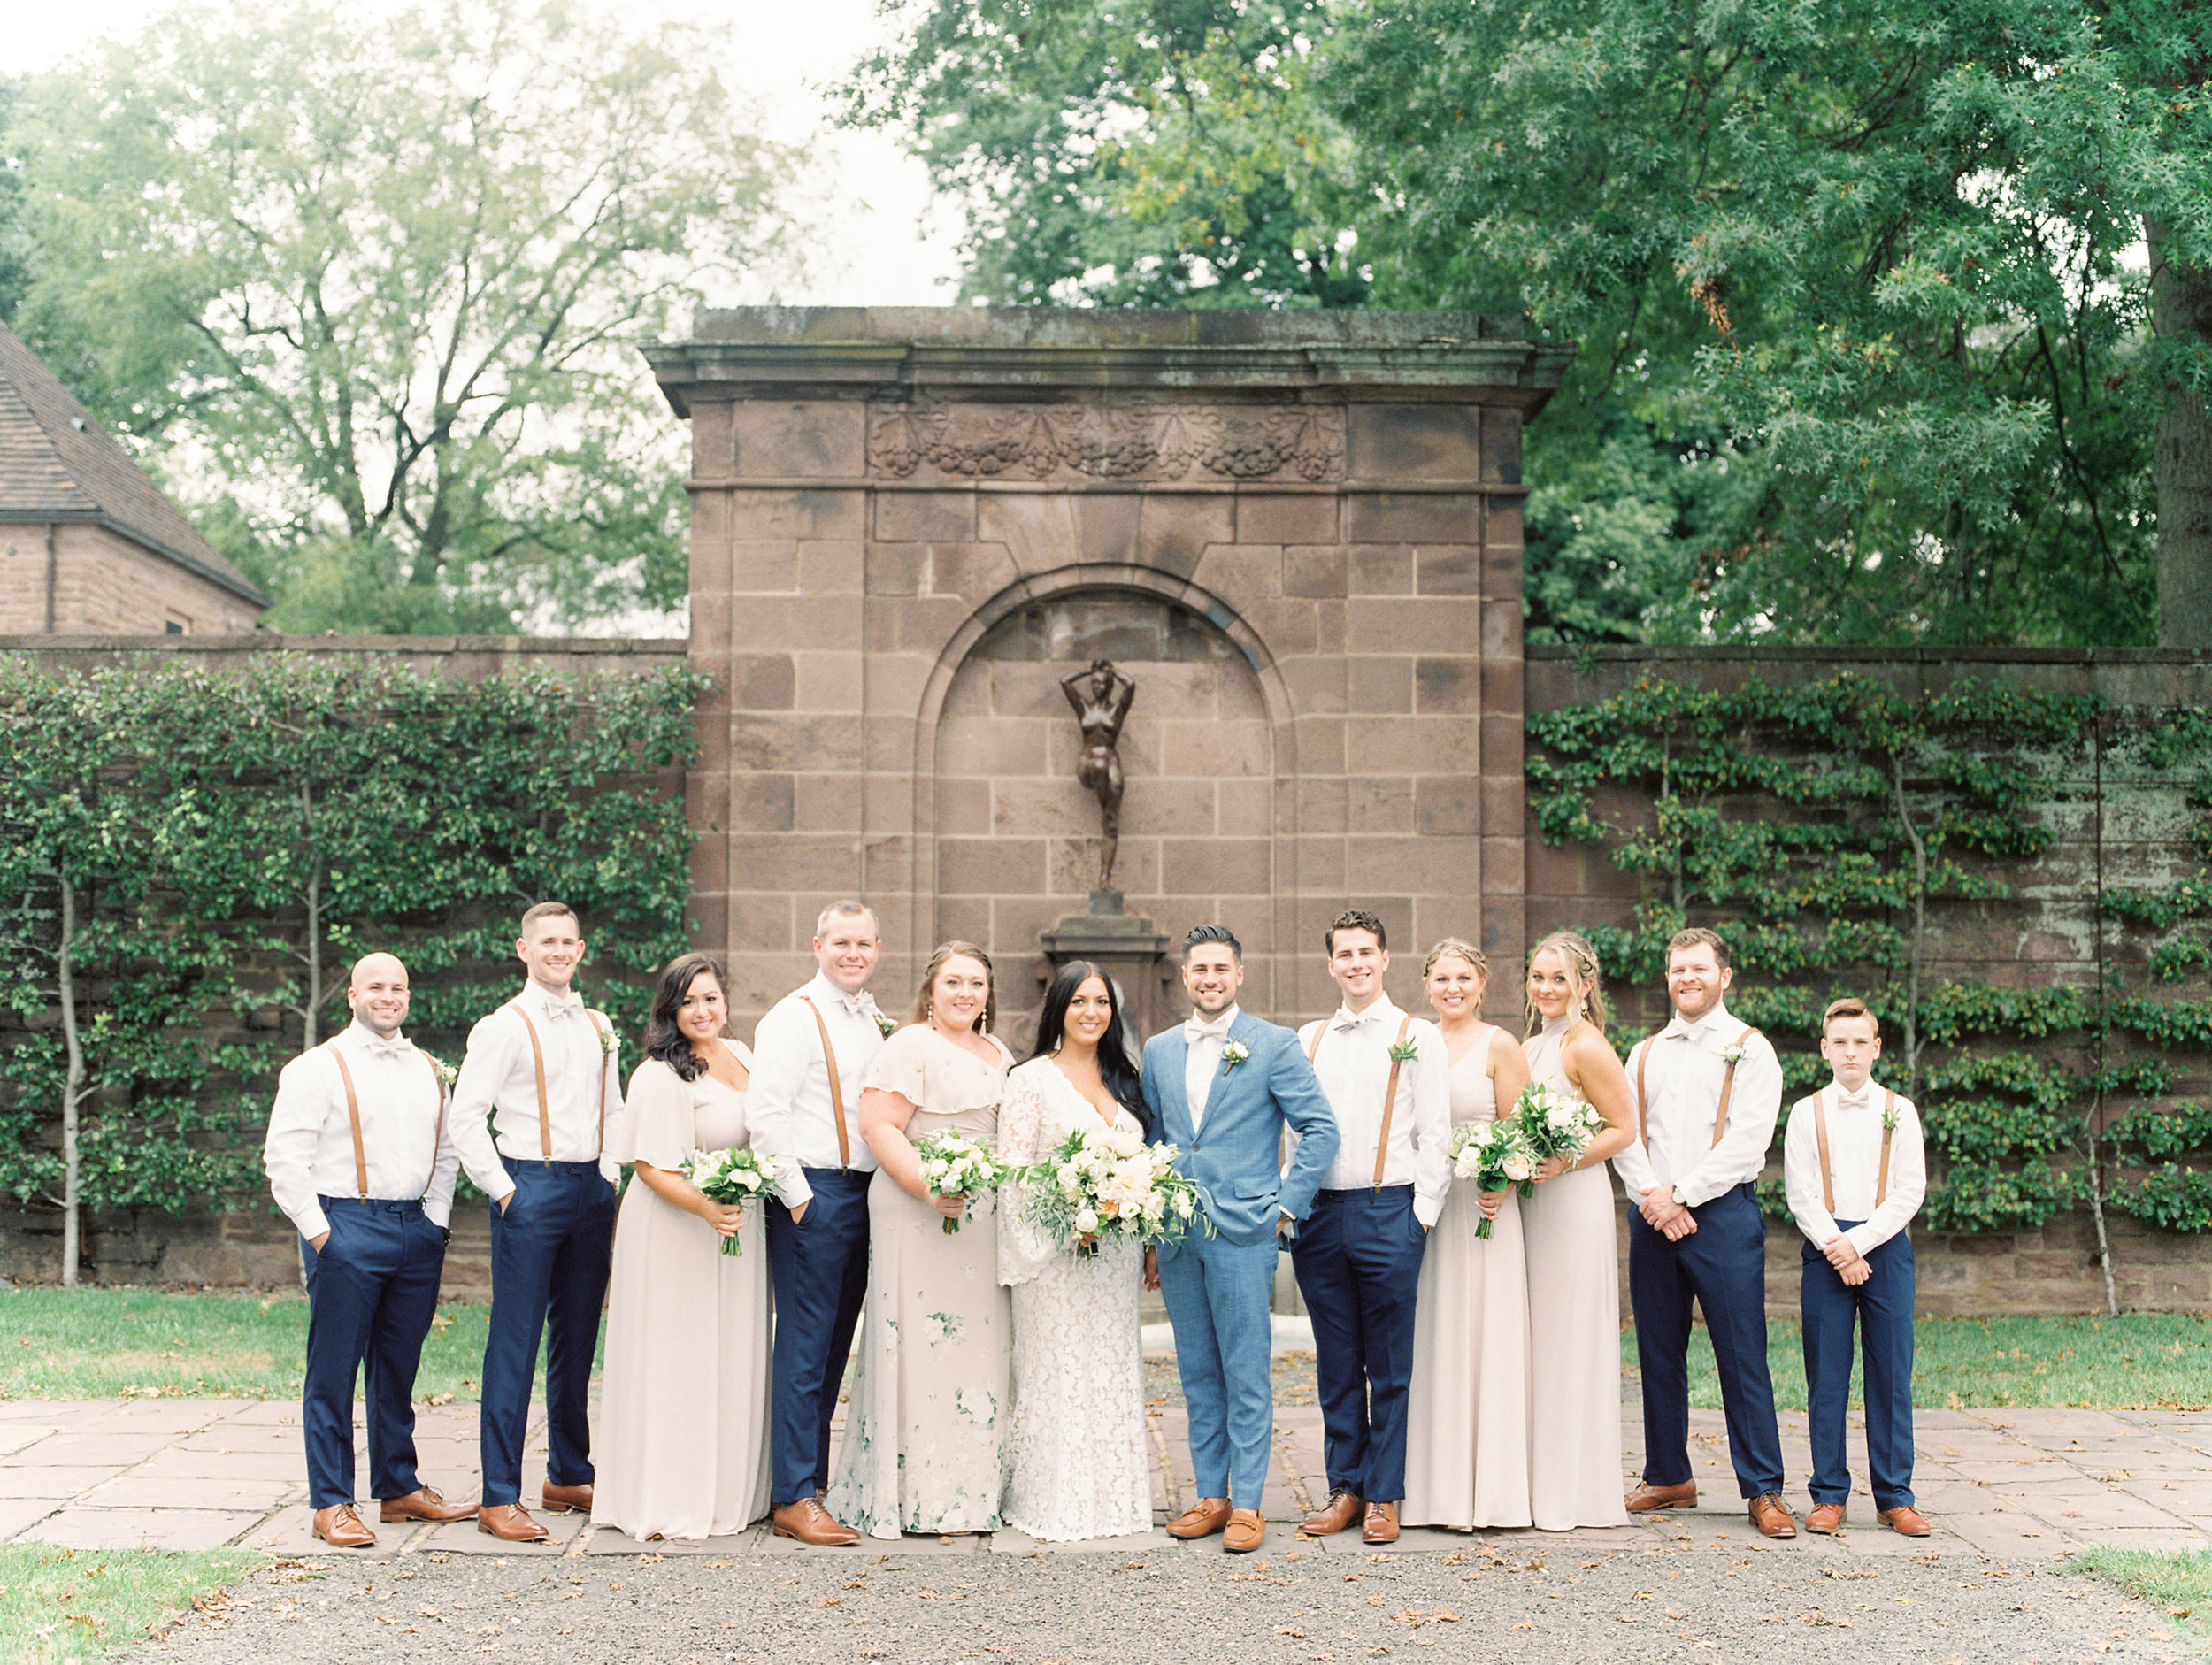 This bridal party won us over in timeless shades of blue, nude, and white from this bright boho chic Tyler Gardens wedding in Bucks County